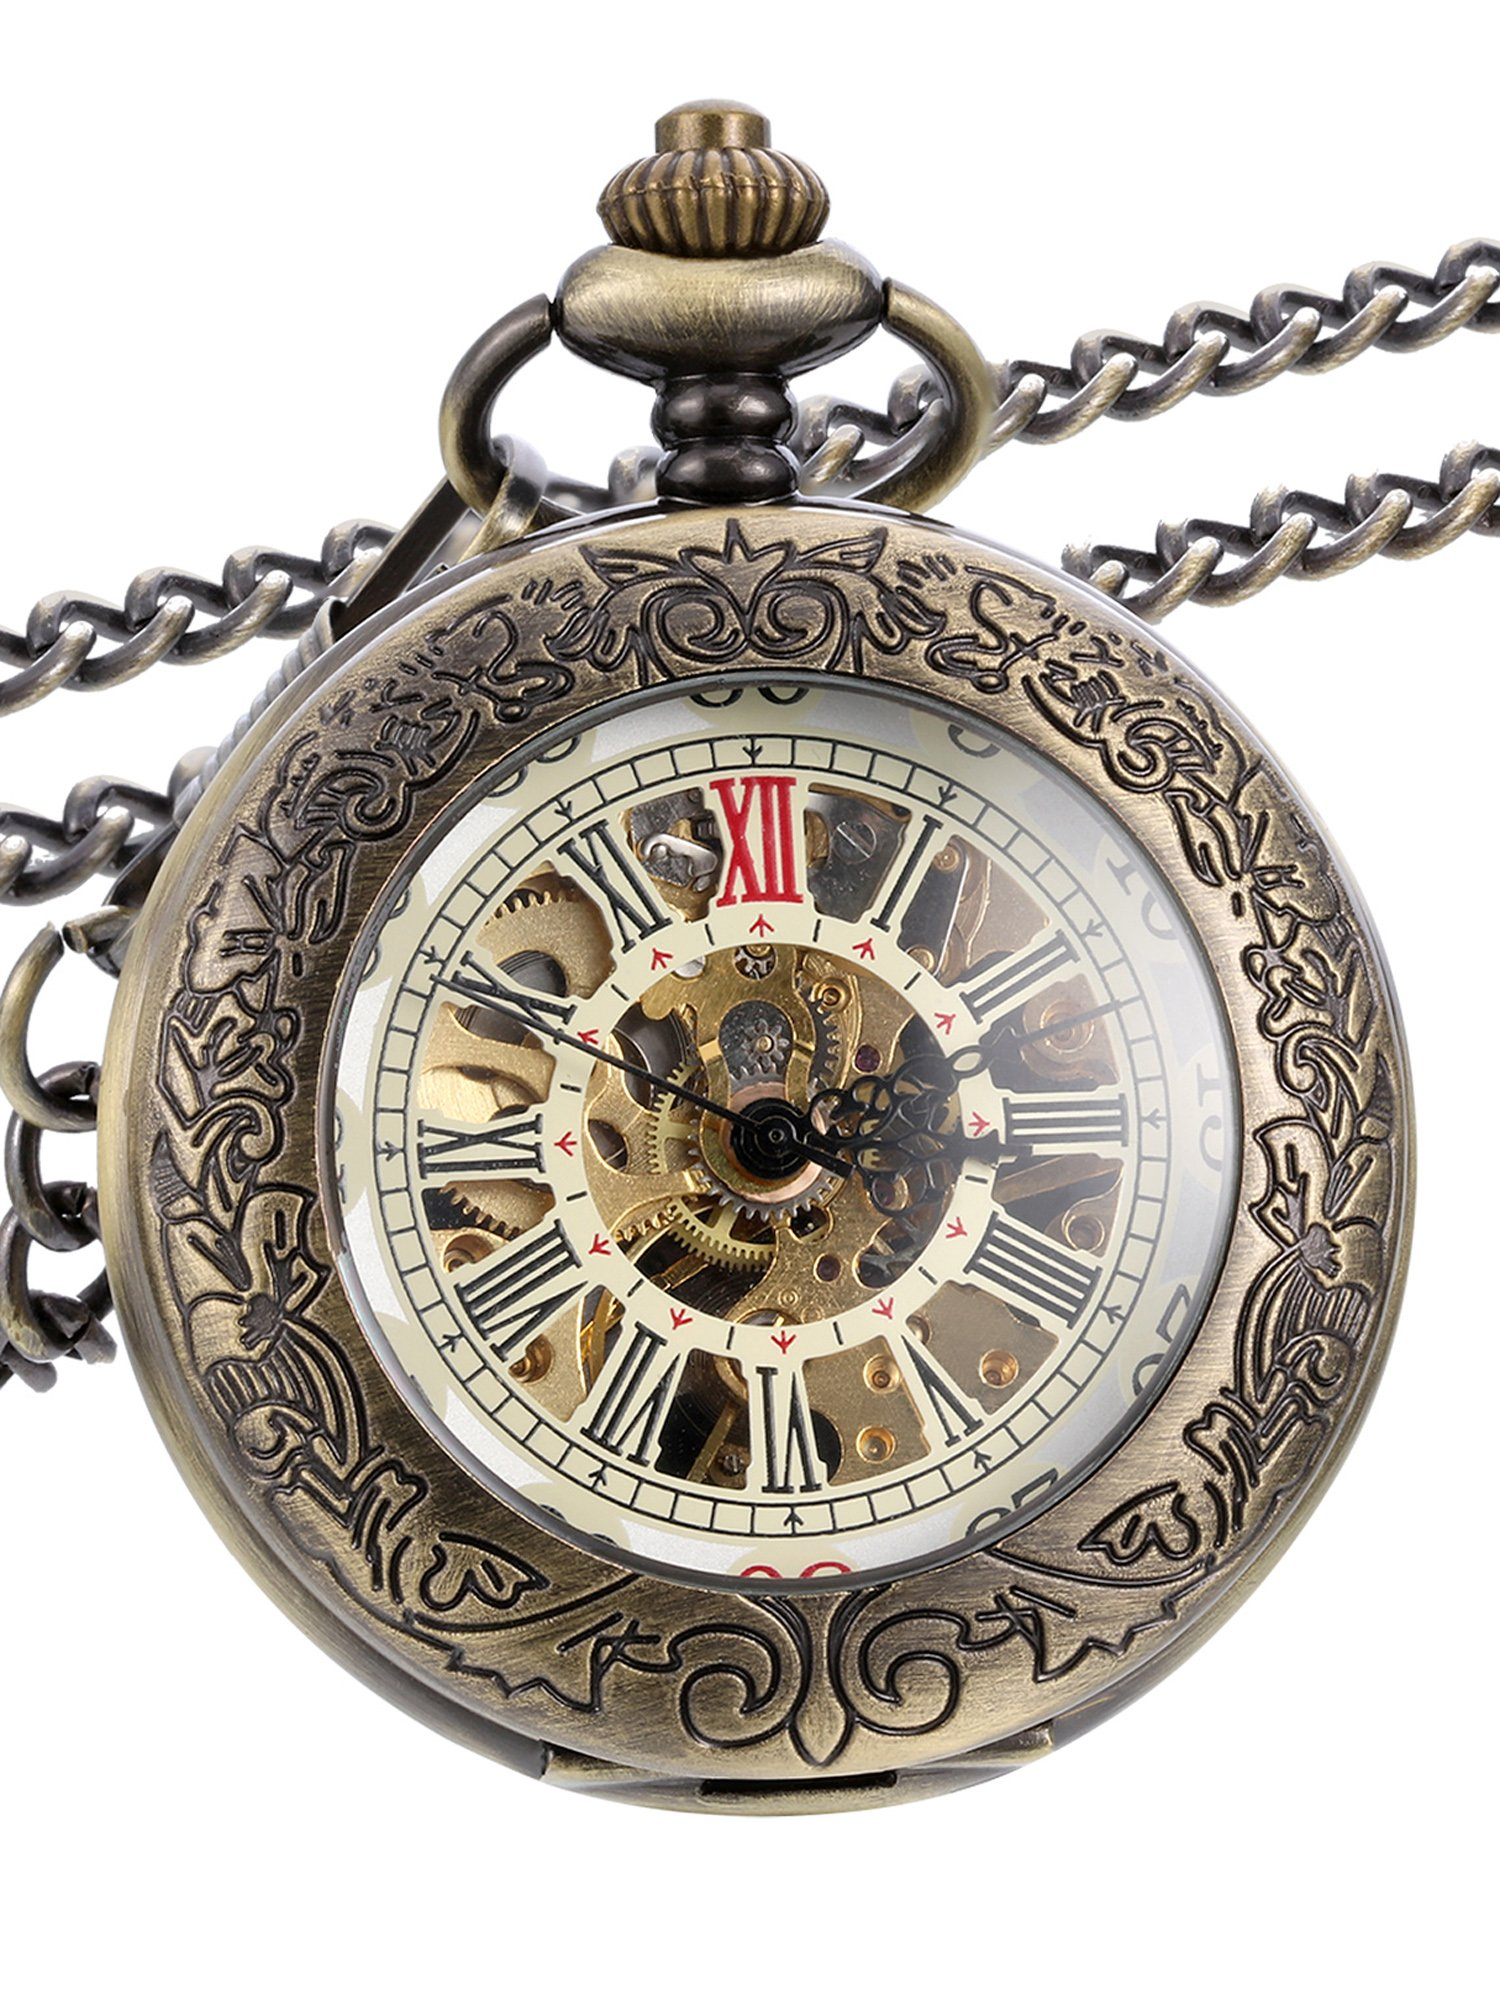 Hicarer Steampunk Classic Bronze Mechanical Pocket Watch with Chain by Hicarer